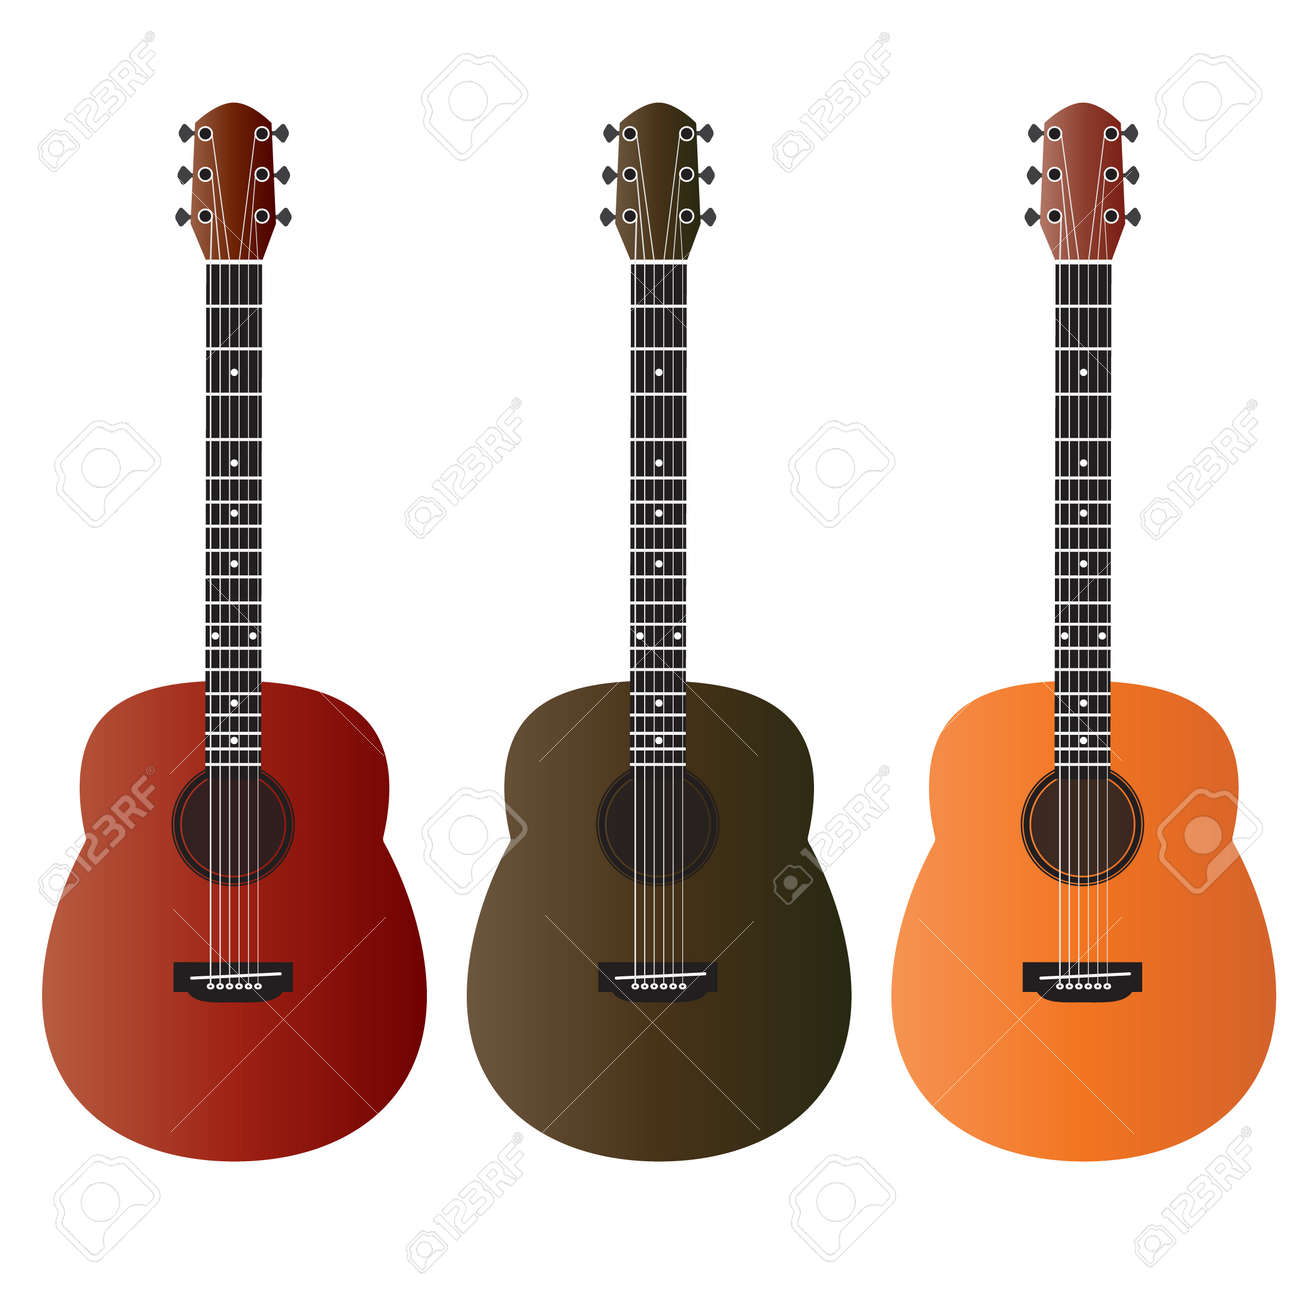 acoustic guitar vector royalty free cliparts vectors and stock rh 123rf com acoustic guitar vector free download acoustic guitar vector outline